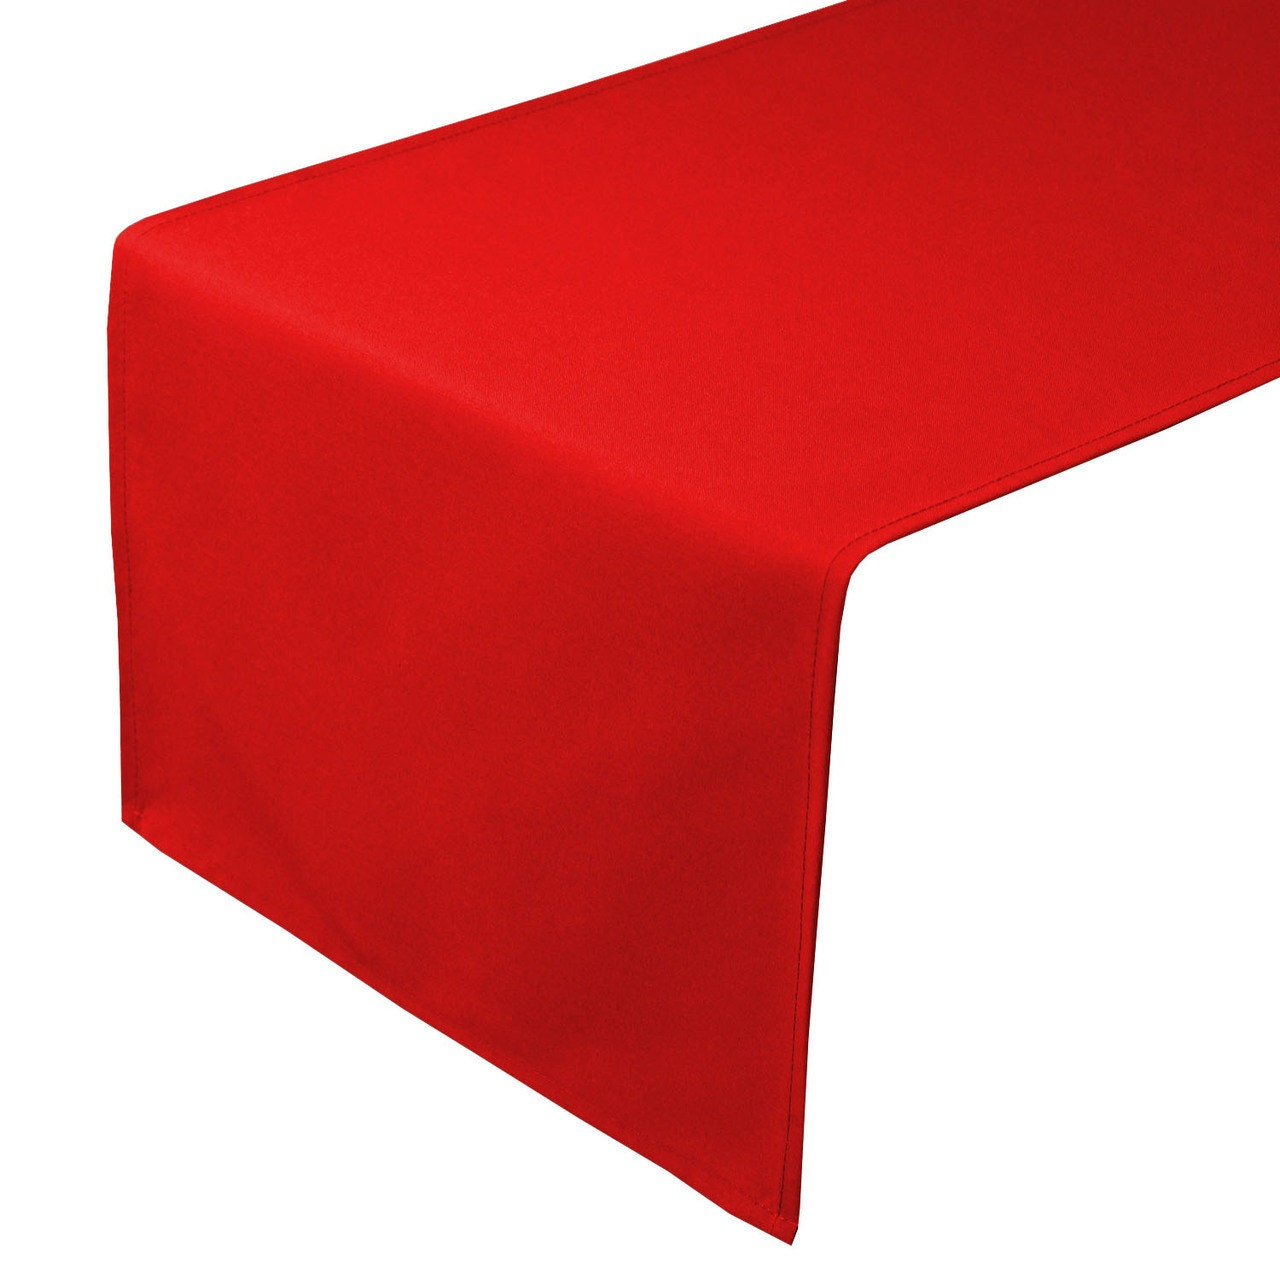 red table runner 14 x 108 inches red table runners for. Black Bedroom Furniture Sets. Home Design Ideas